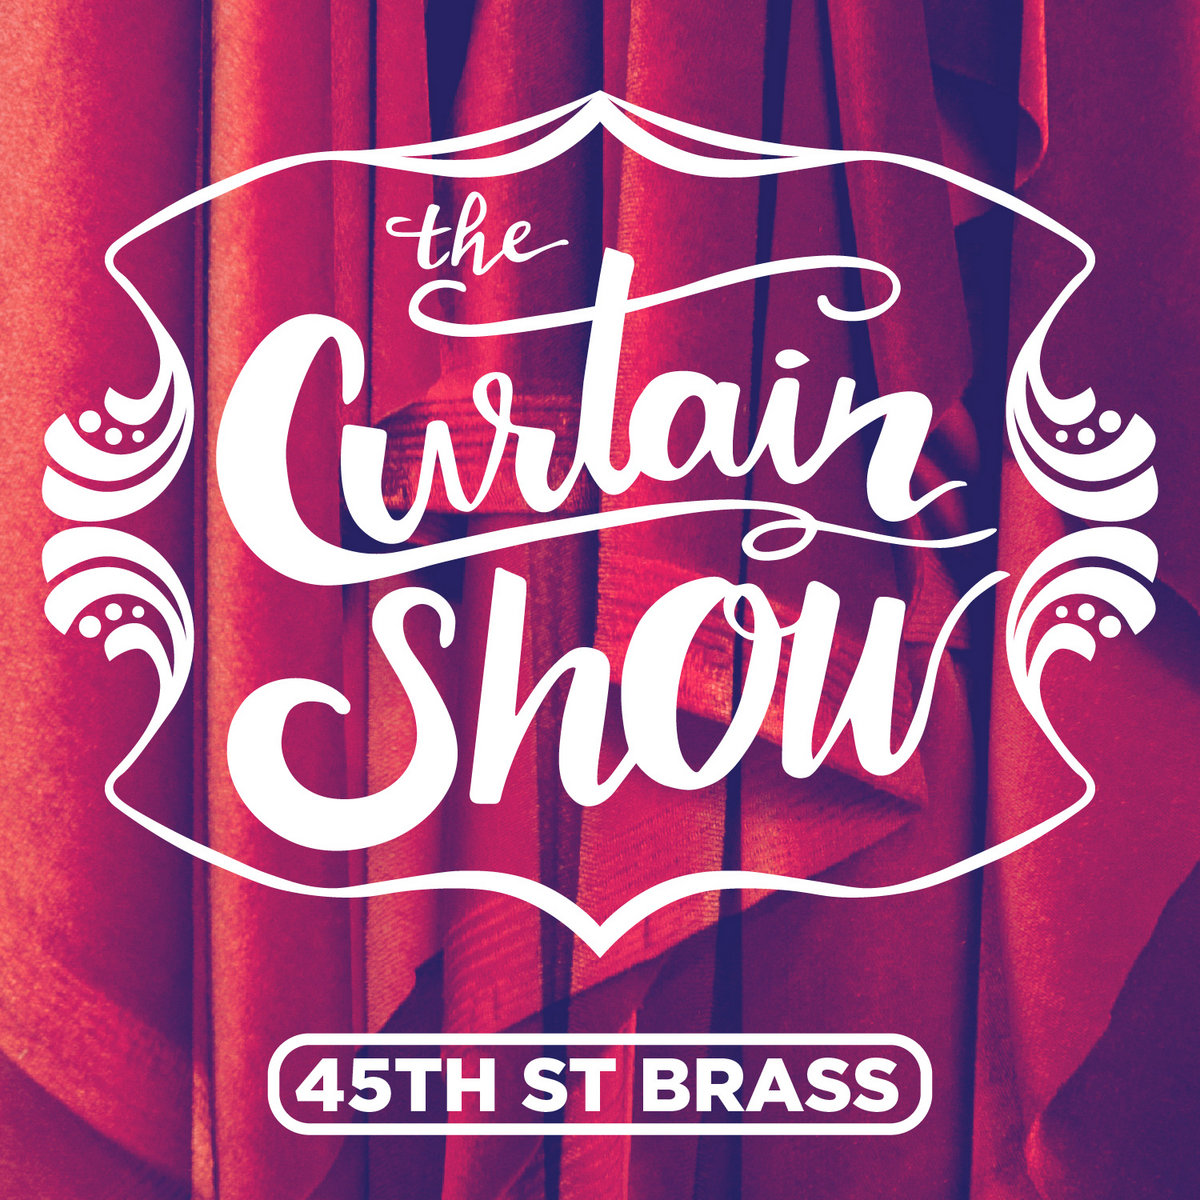 The Curtain Show | 45th St Brass